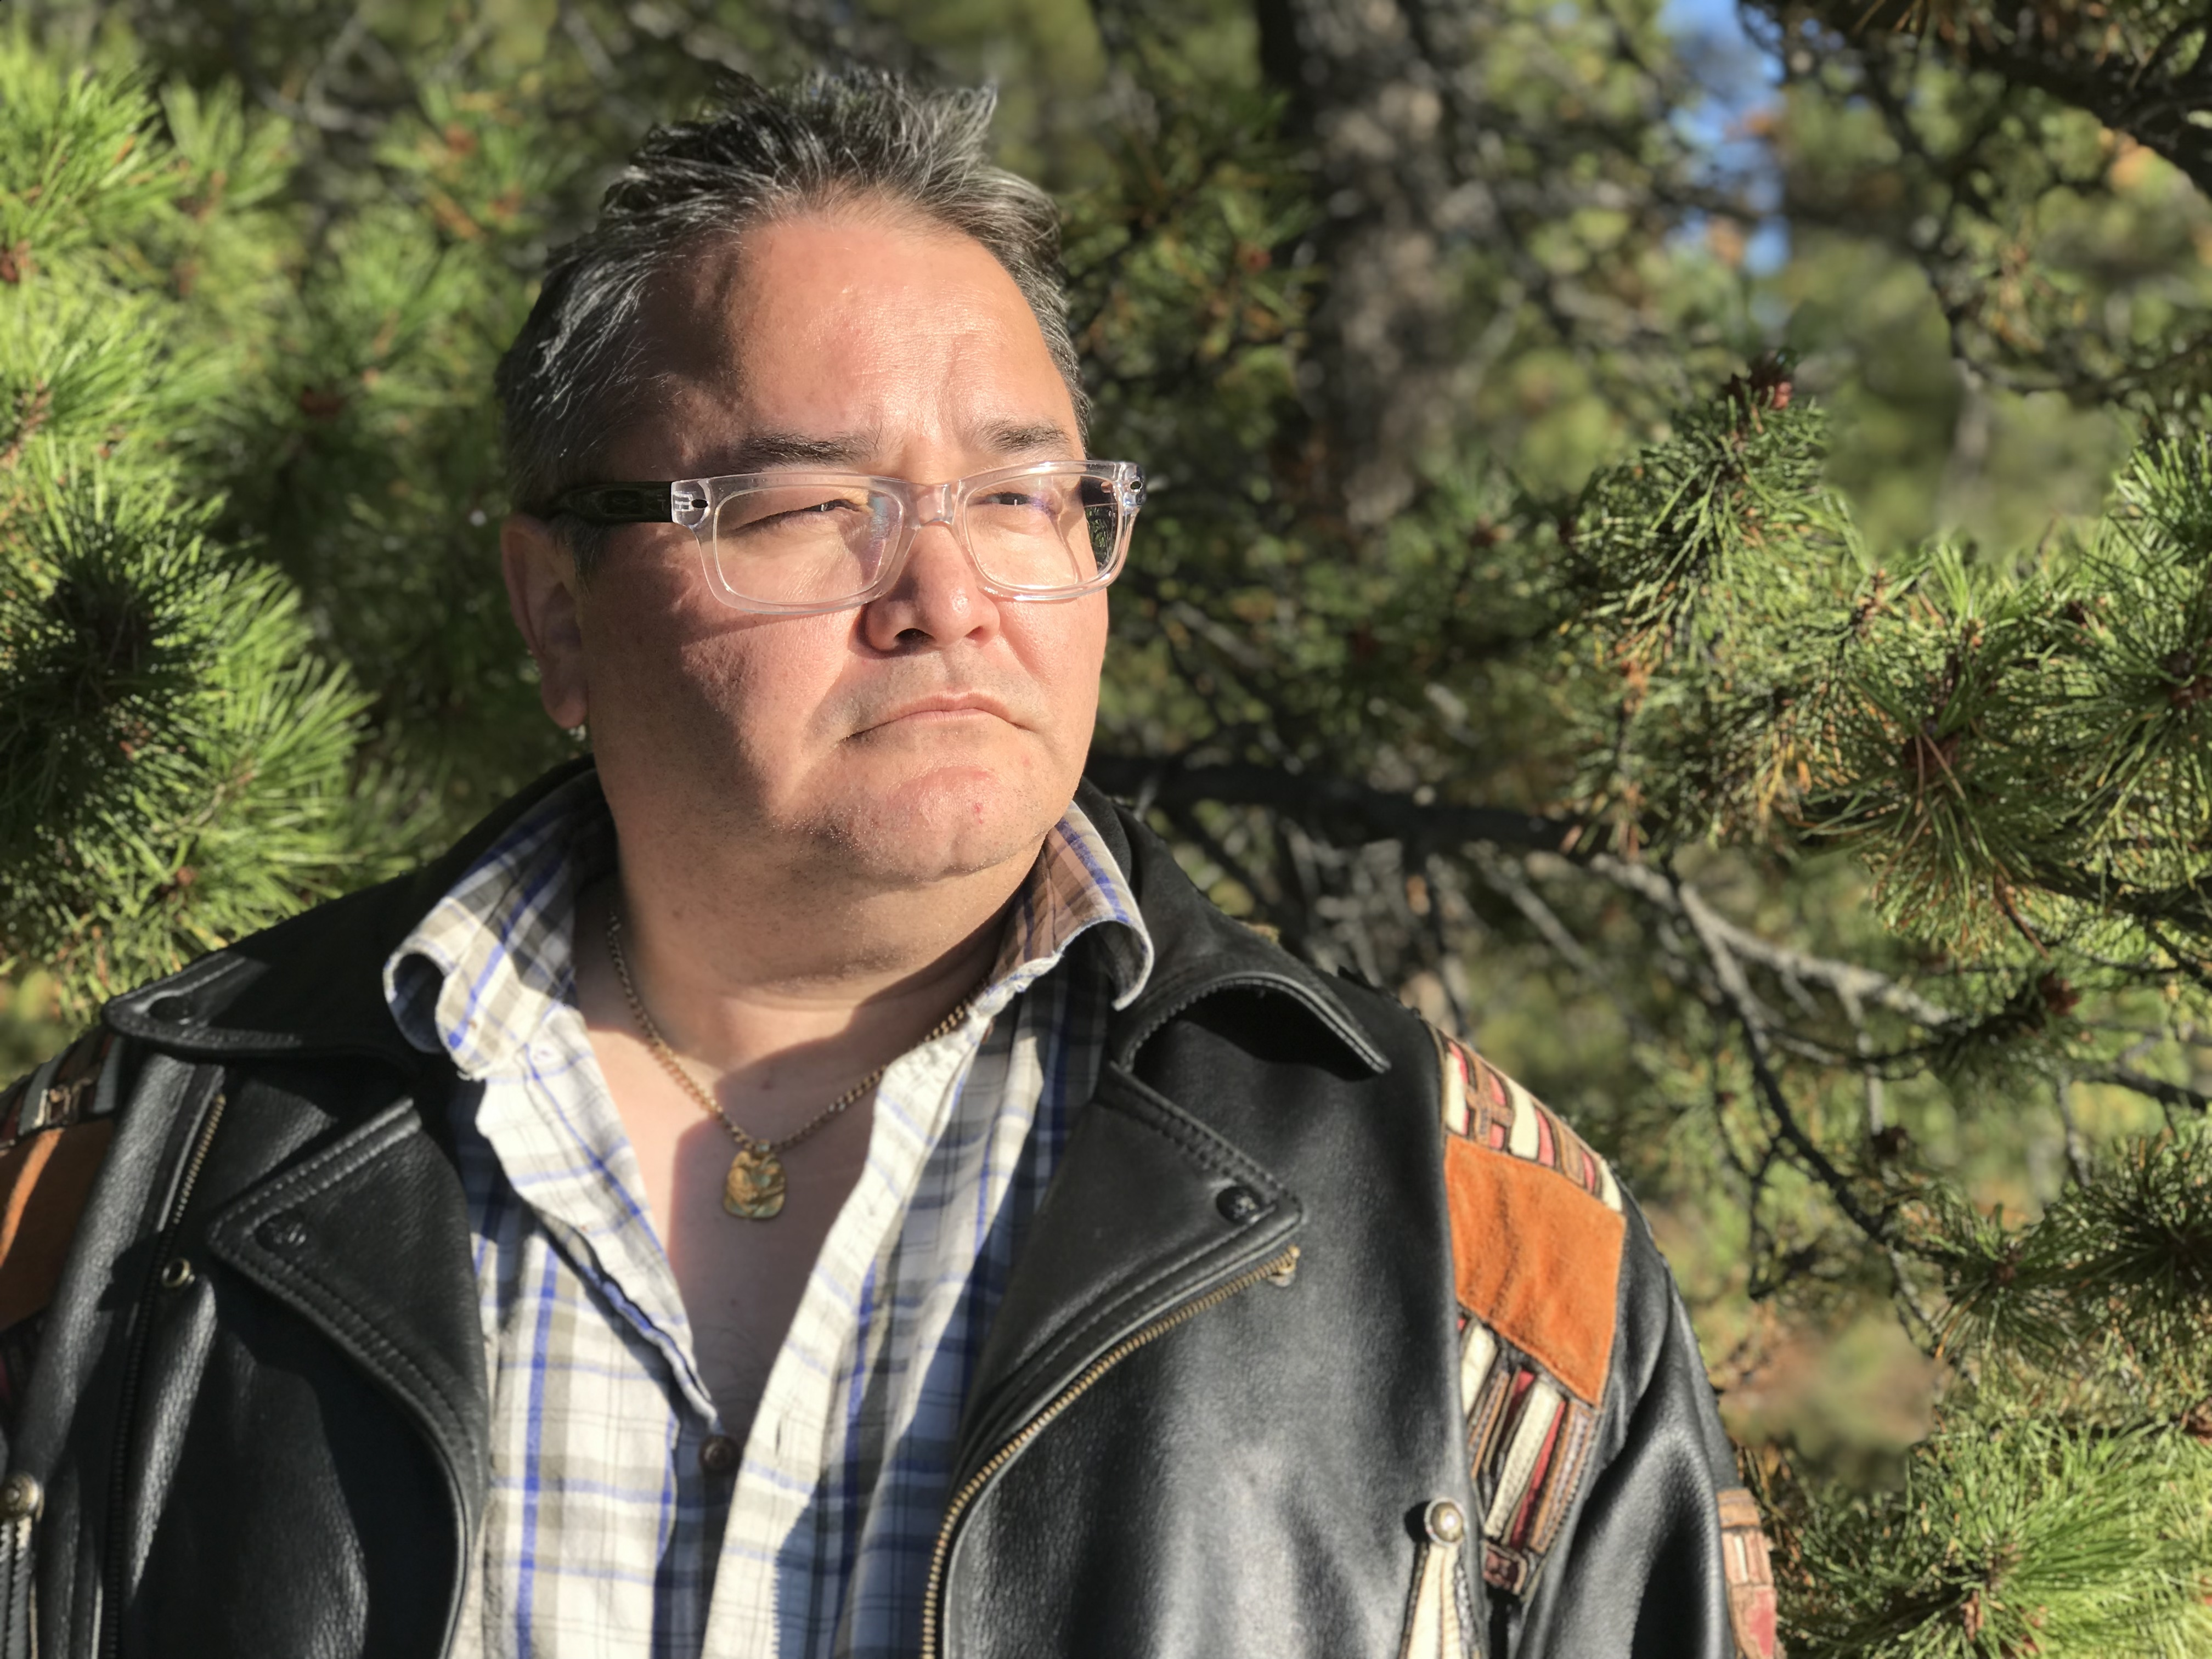 'If I don't forgive them, I'm gonna carry resentment in my soul,' Loverin says. (Mike Rudyk/CBC)